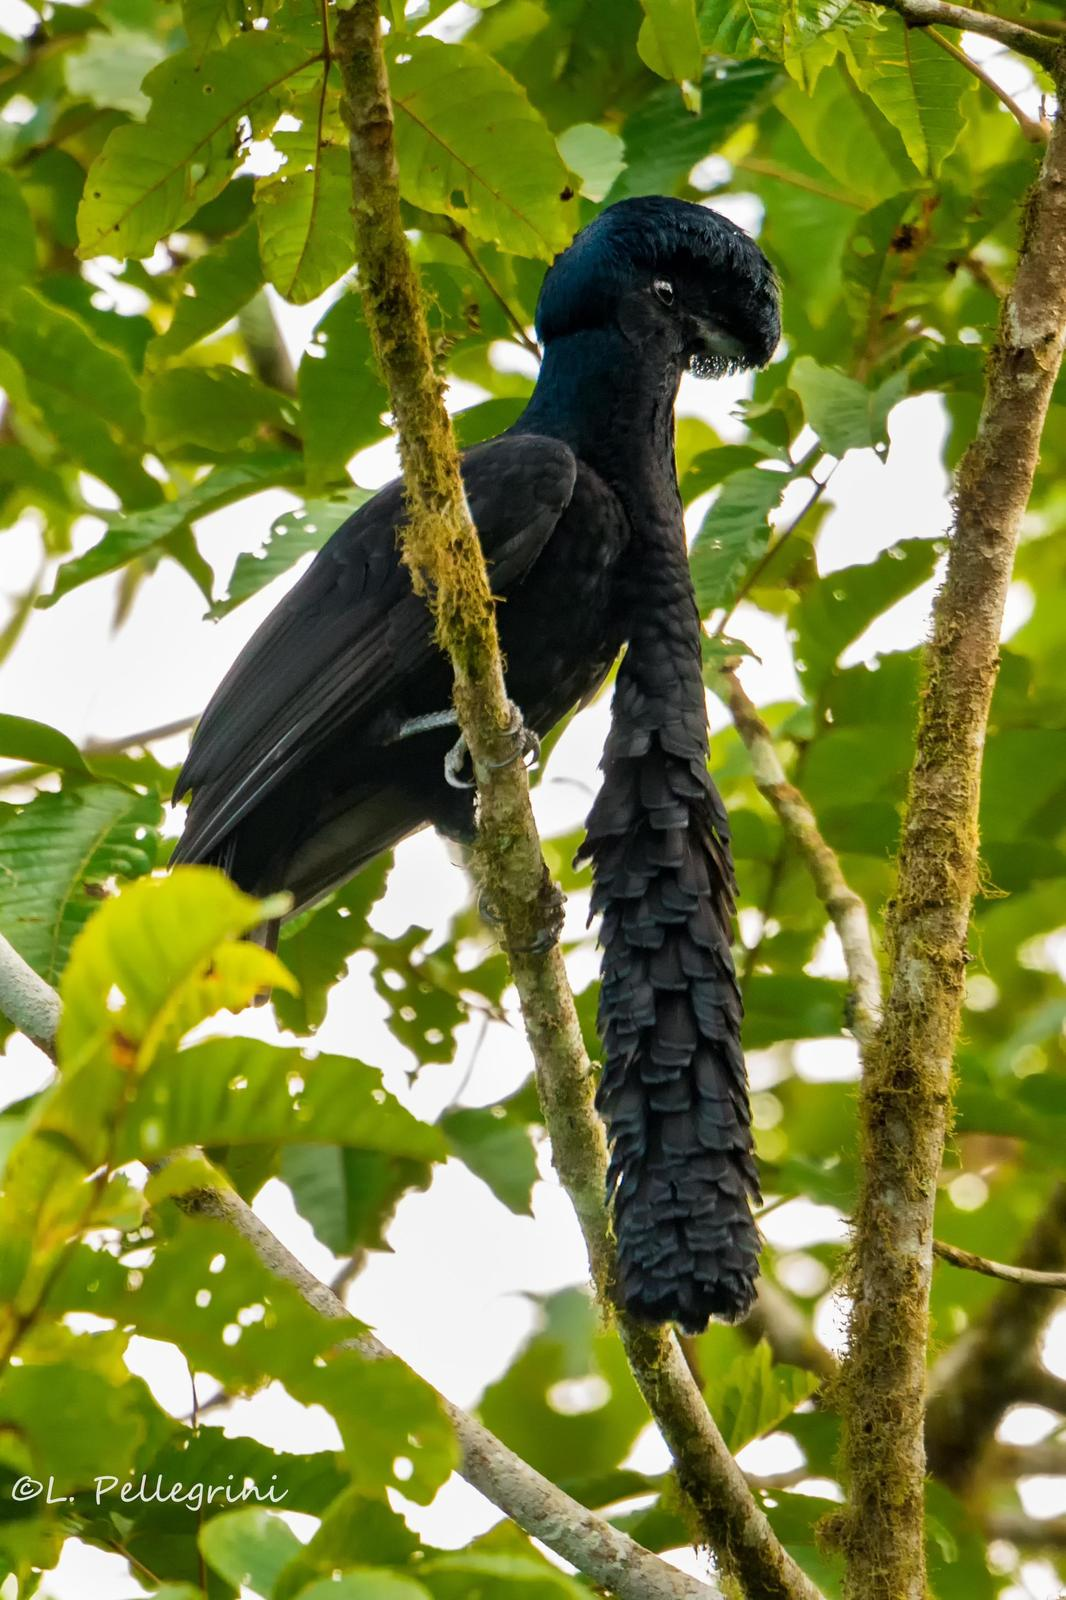 Long-wattled Umbrellabird Photo by Laurence Pellegrini